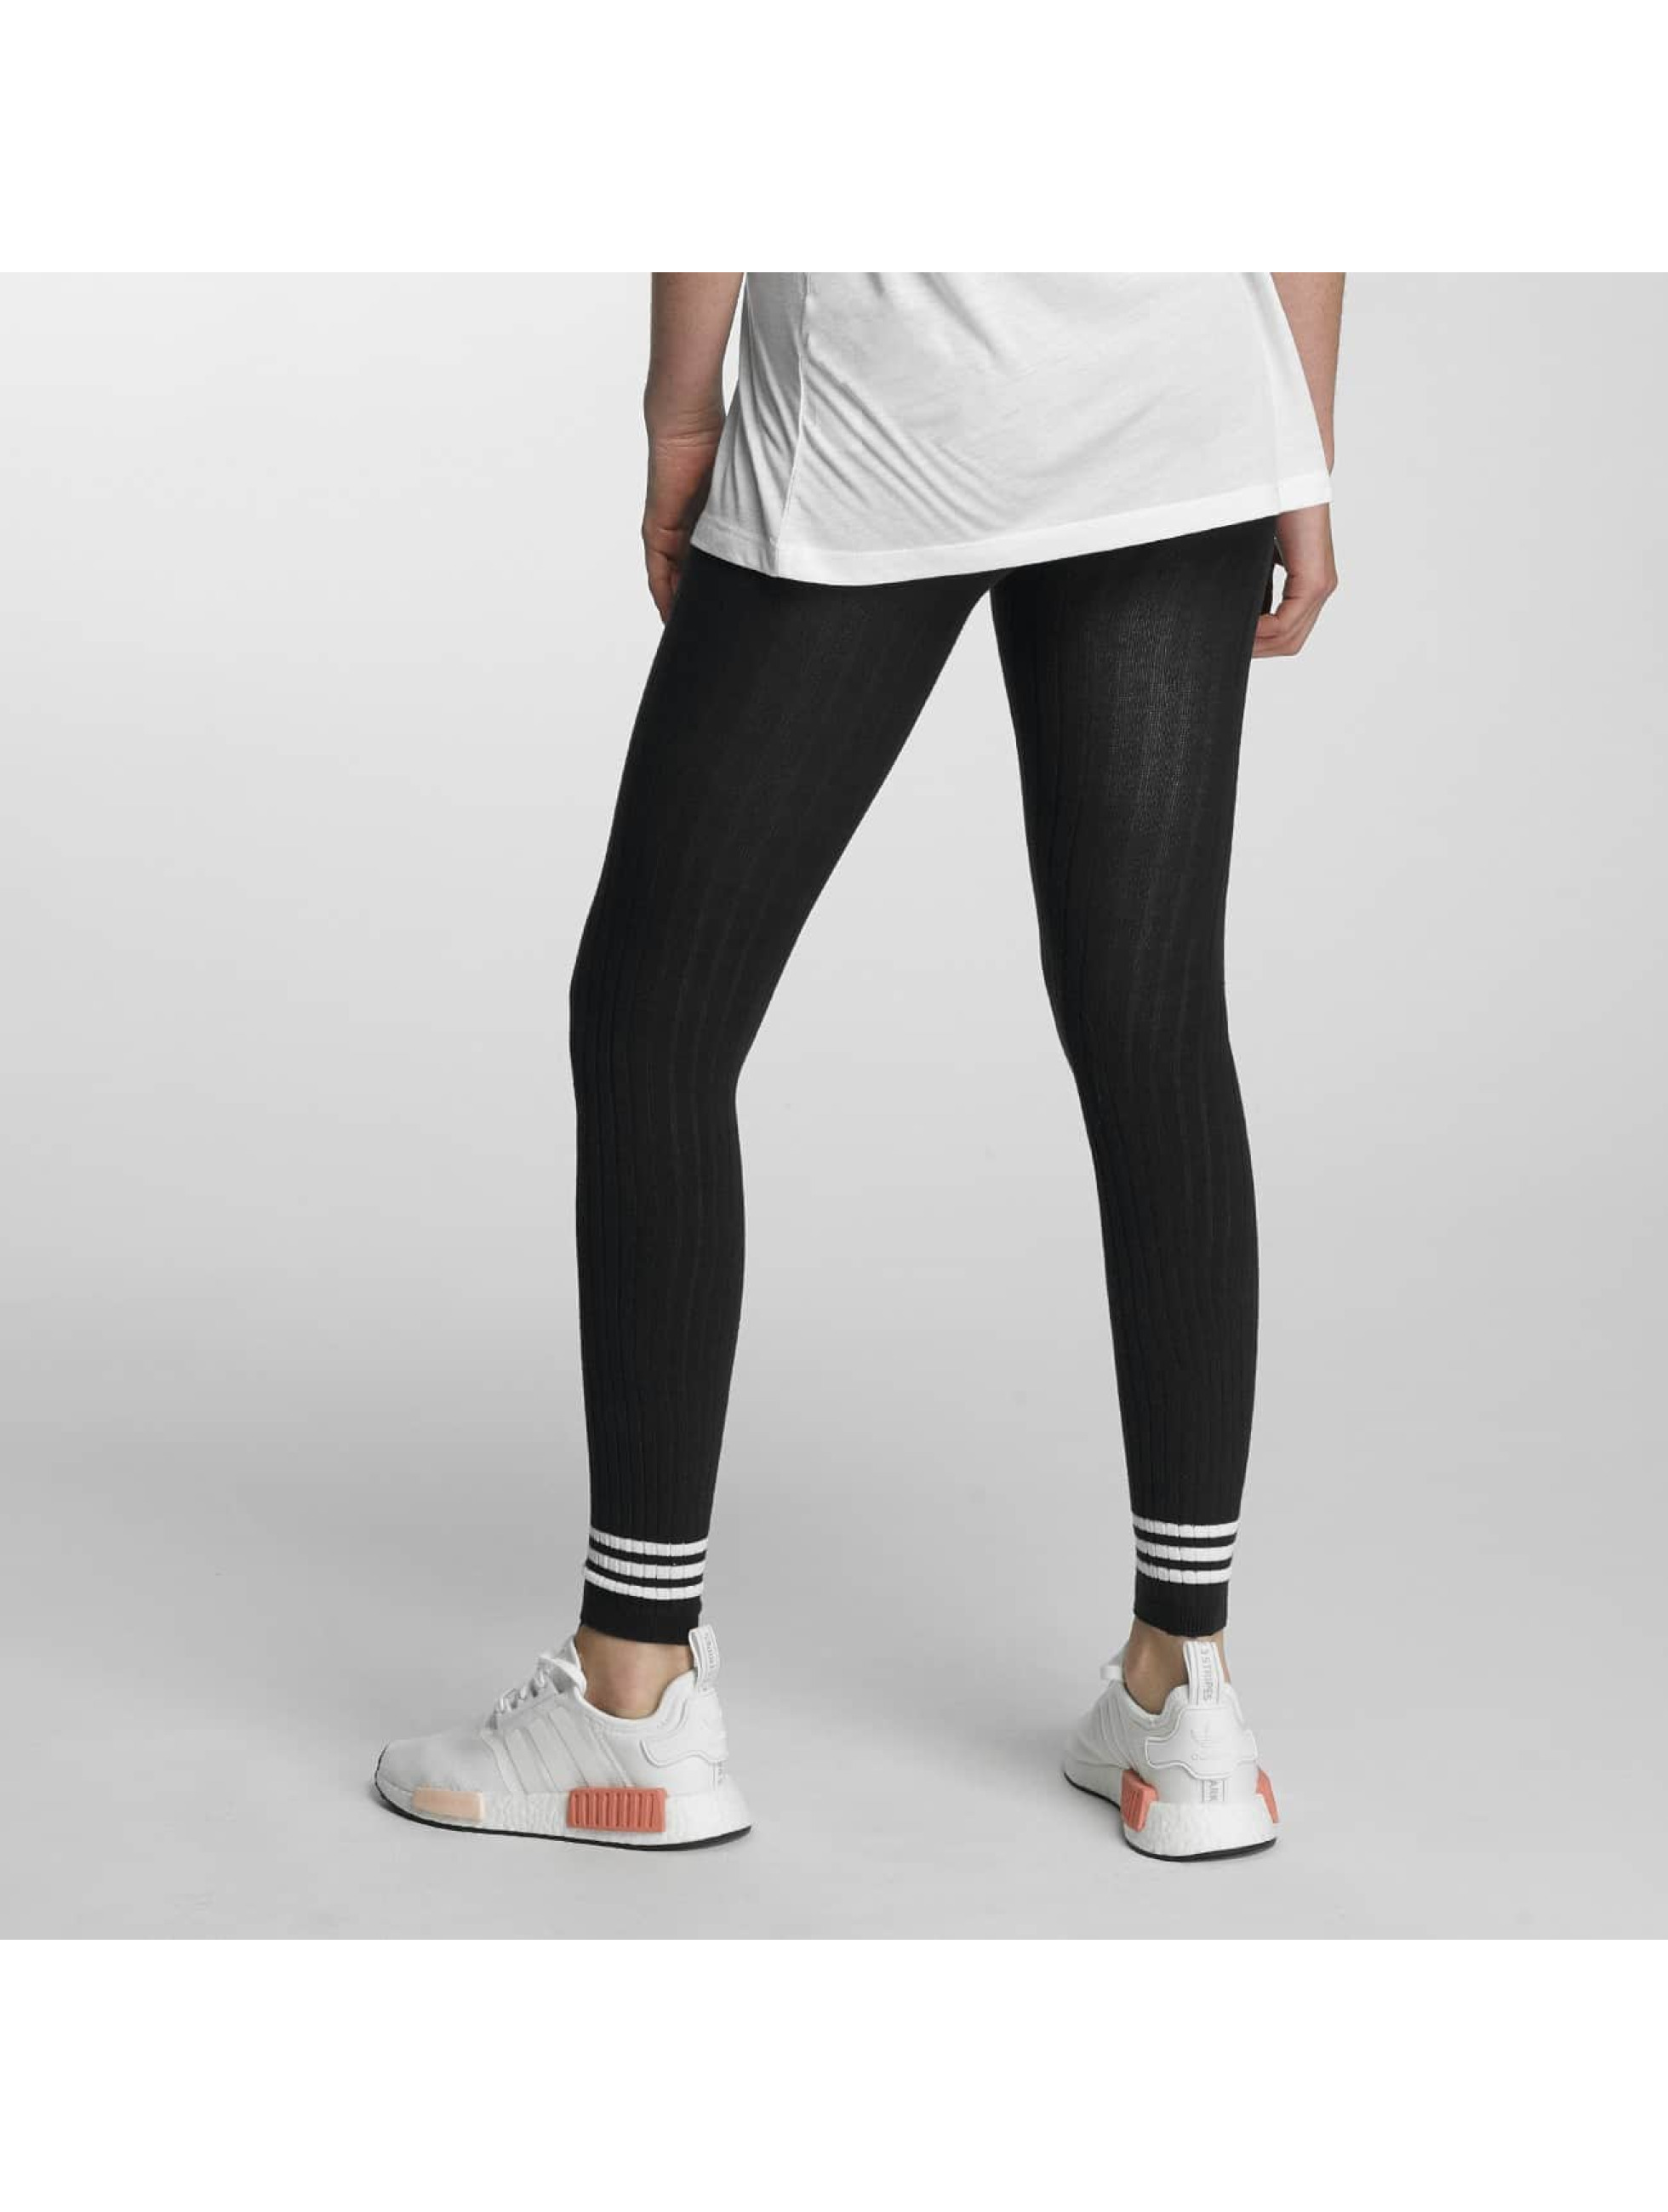 adidas originals Legging/Tregging 3 Stripes azul